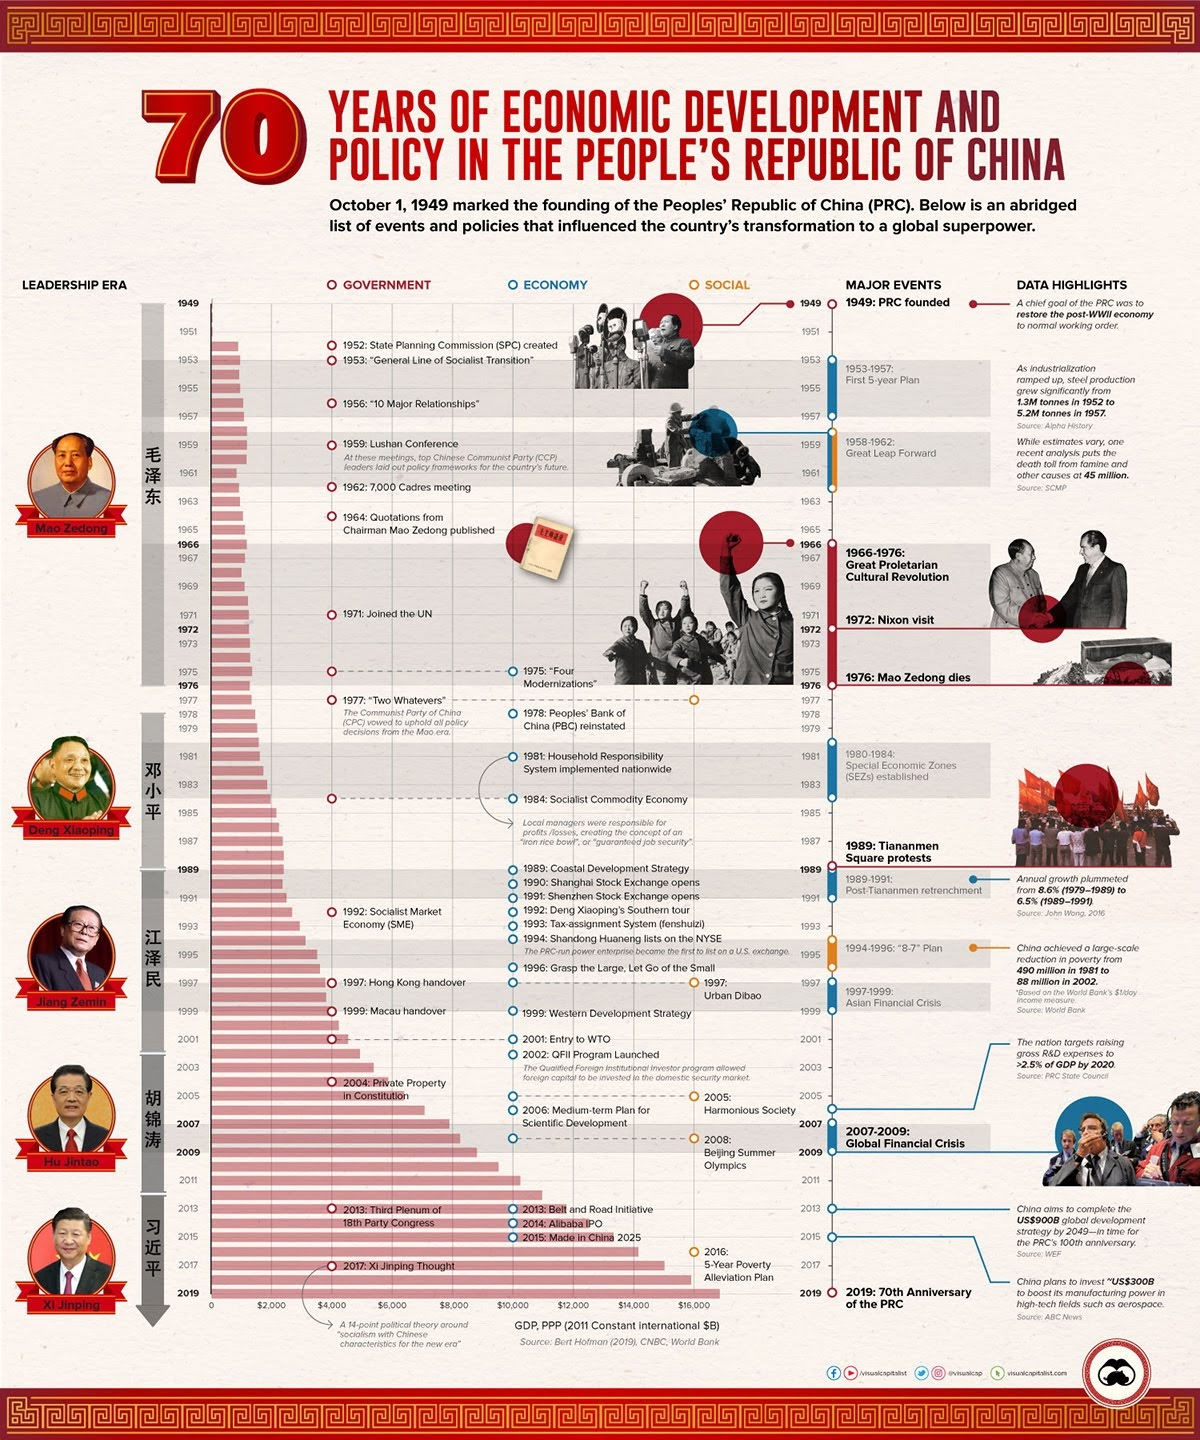 70 Year Of Economic Development And Policy In The People's Republic of China #infographic